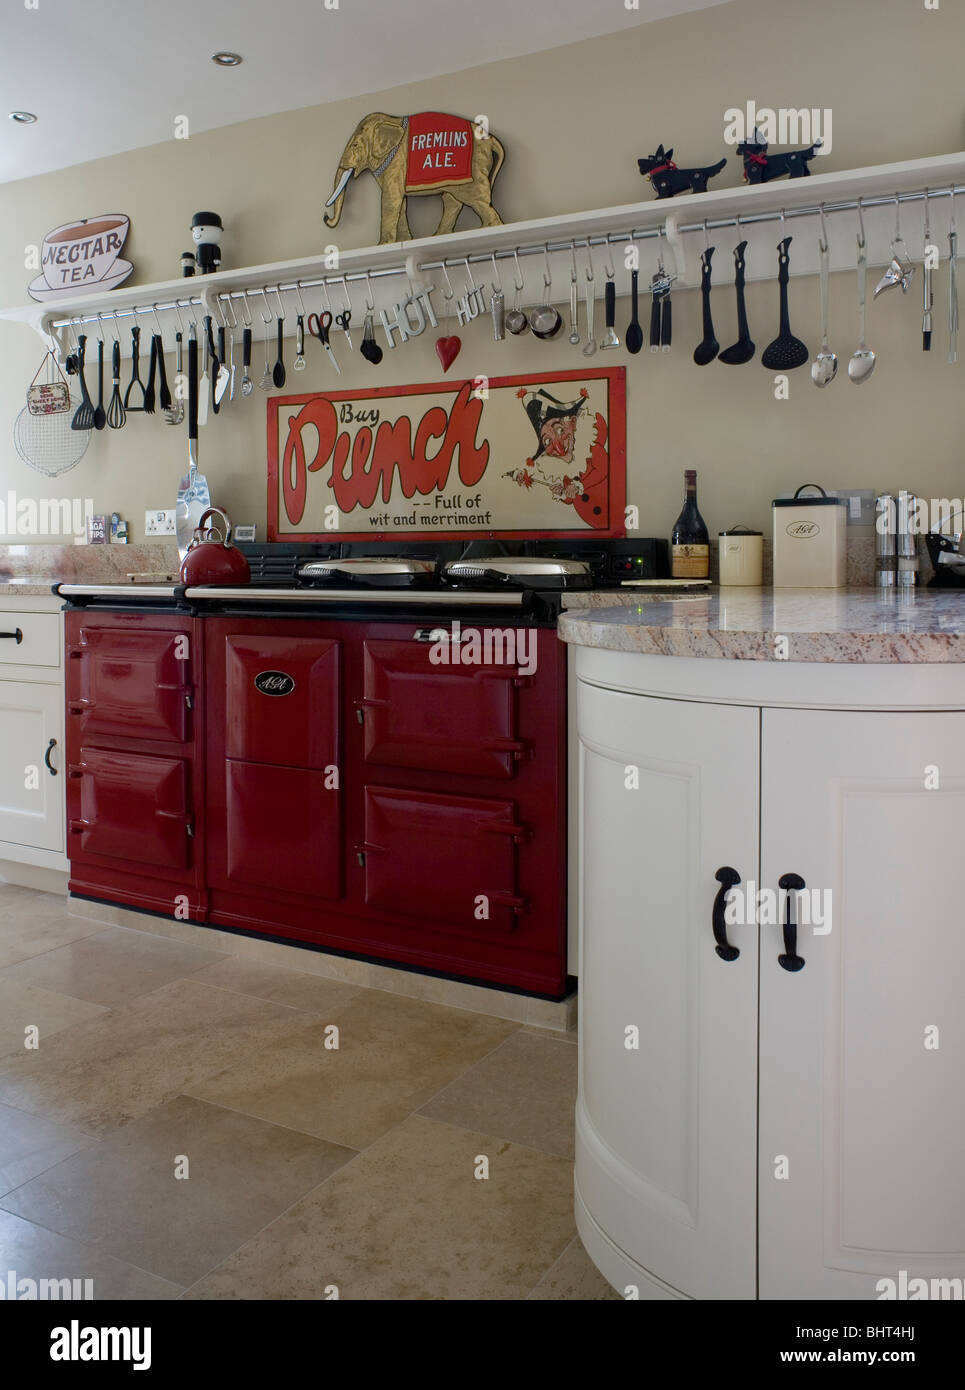 utensils on long shelf above red double aga oven in modern country kitchen utensils on long shelf above red double aga oven in modern country      rh   alamy com